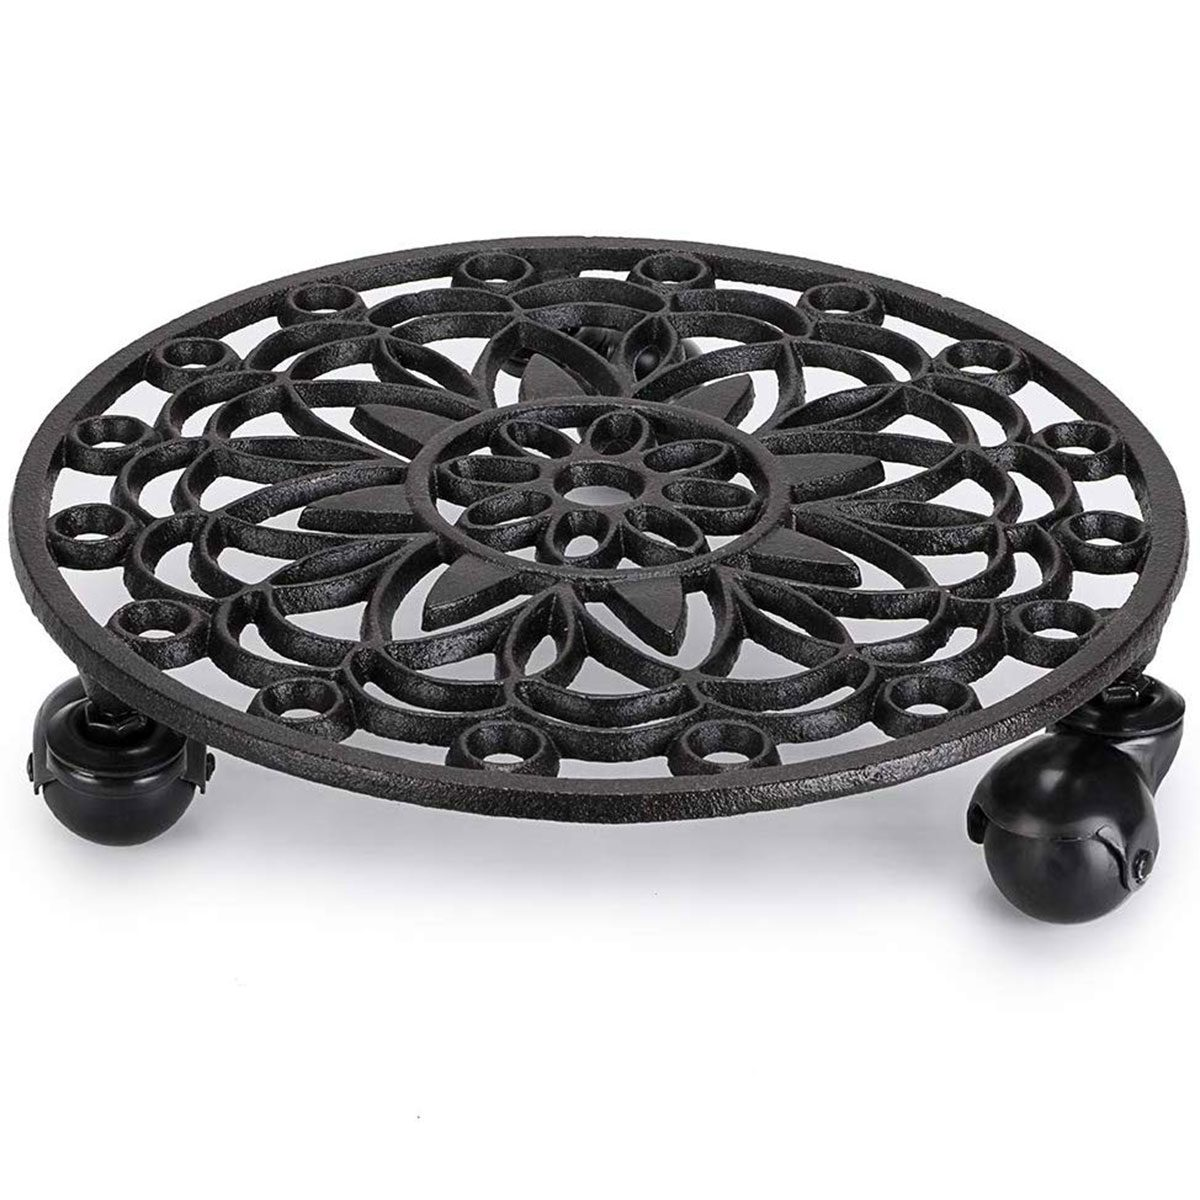 Plant stand with wheels